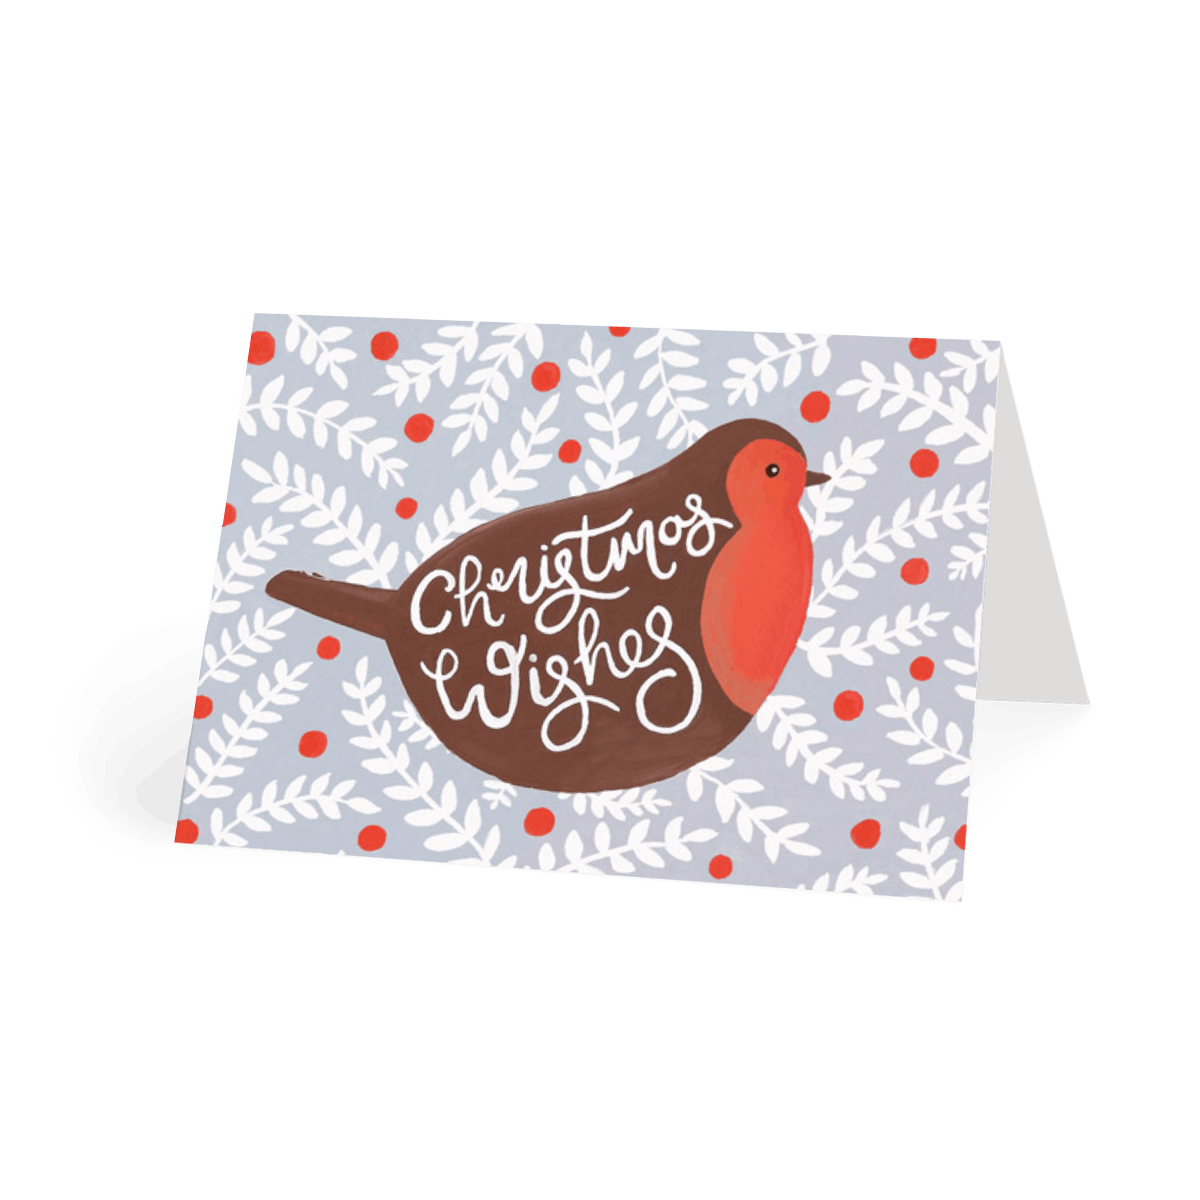 Https%3a%2f%2fwww.papier.com%2fproduct image%2f24670%2f14%2fchristmas wishes robin 6167 front 1498576346.png?ixlib=rb 1.1